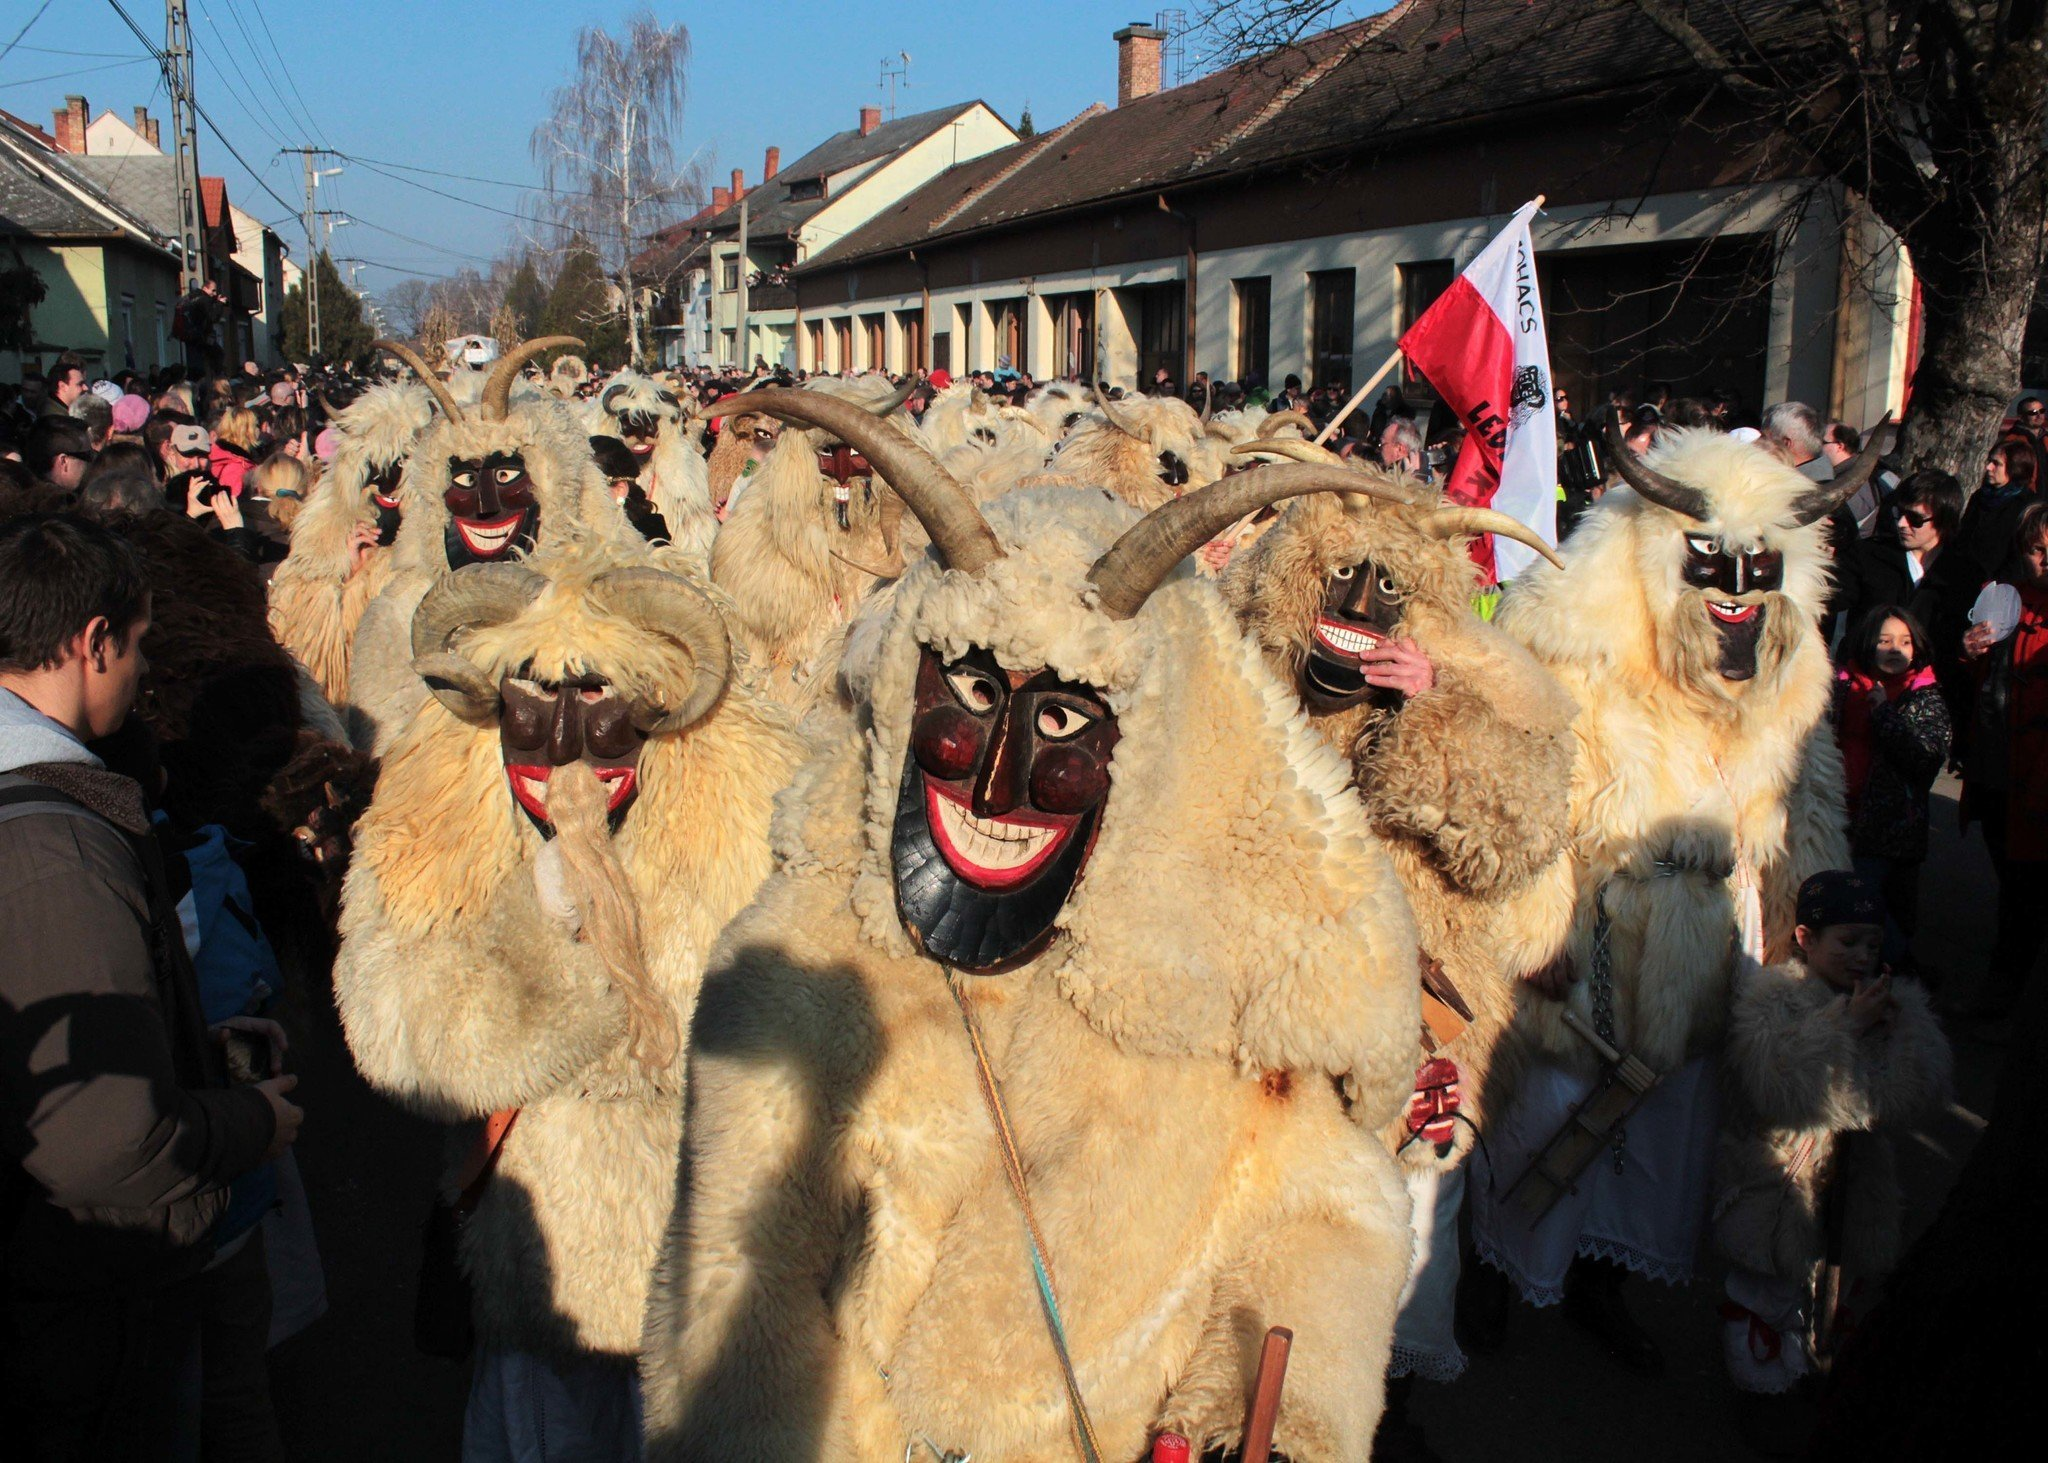 Hungary's greatest event comes soon: masked revellers to scare off winter